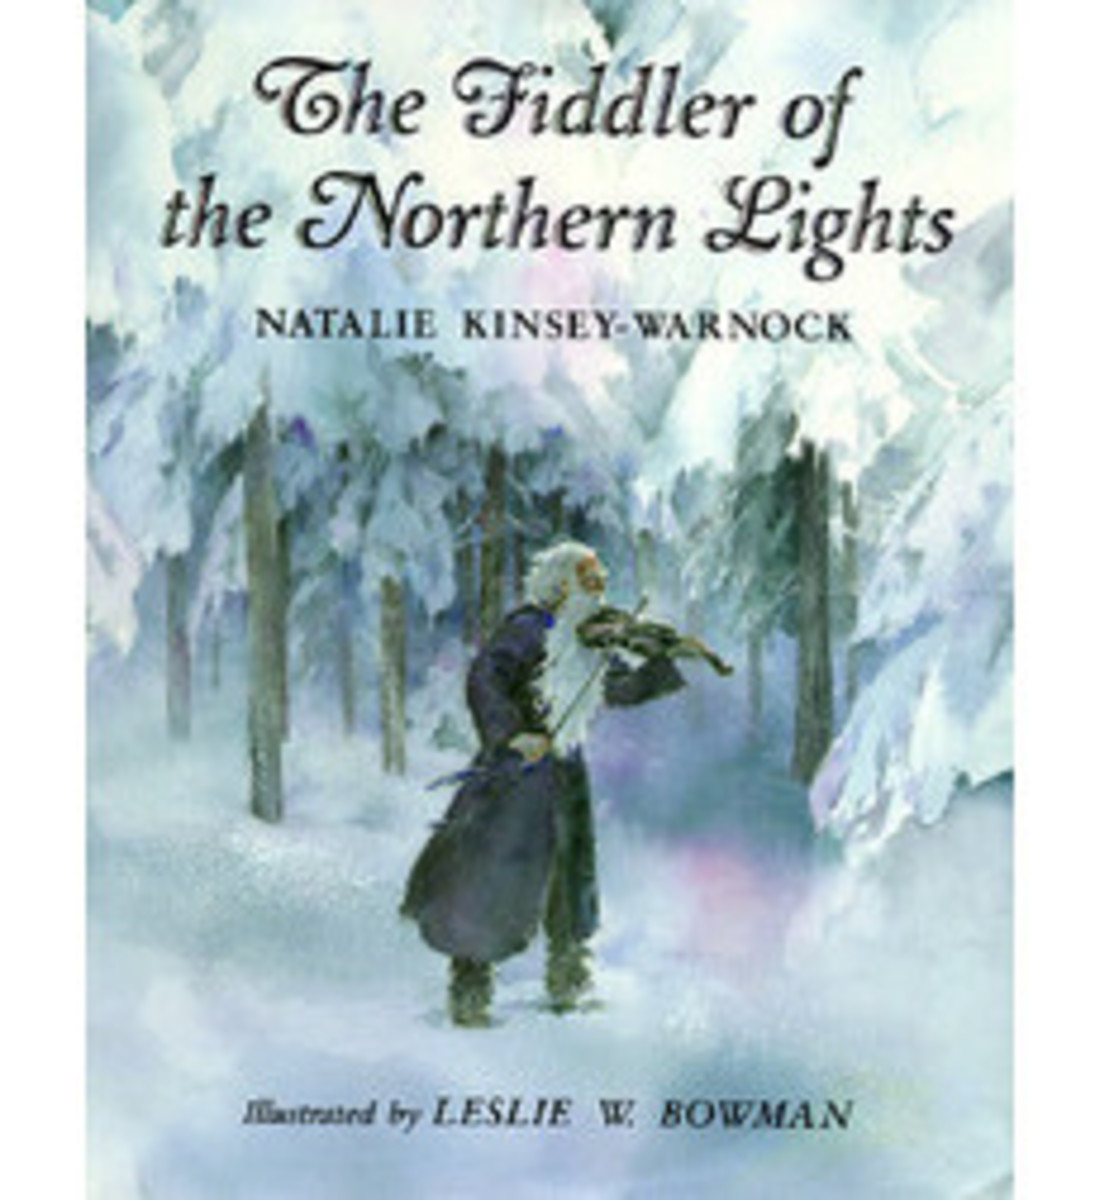 The Fiddler of the Northern Lights by Natalie Kinsey-Warnock - Image is from scholastic.com